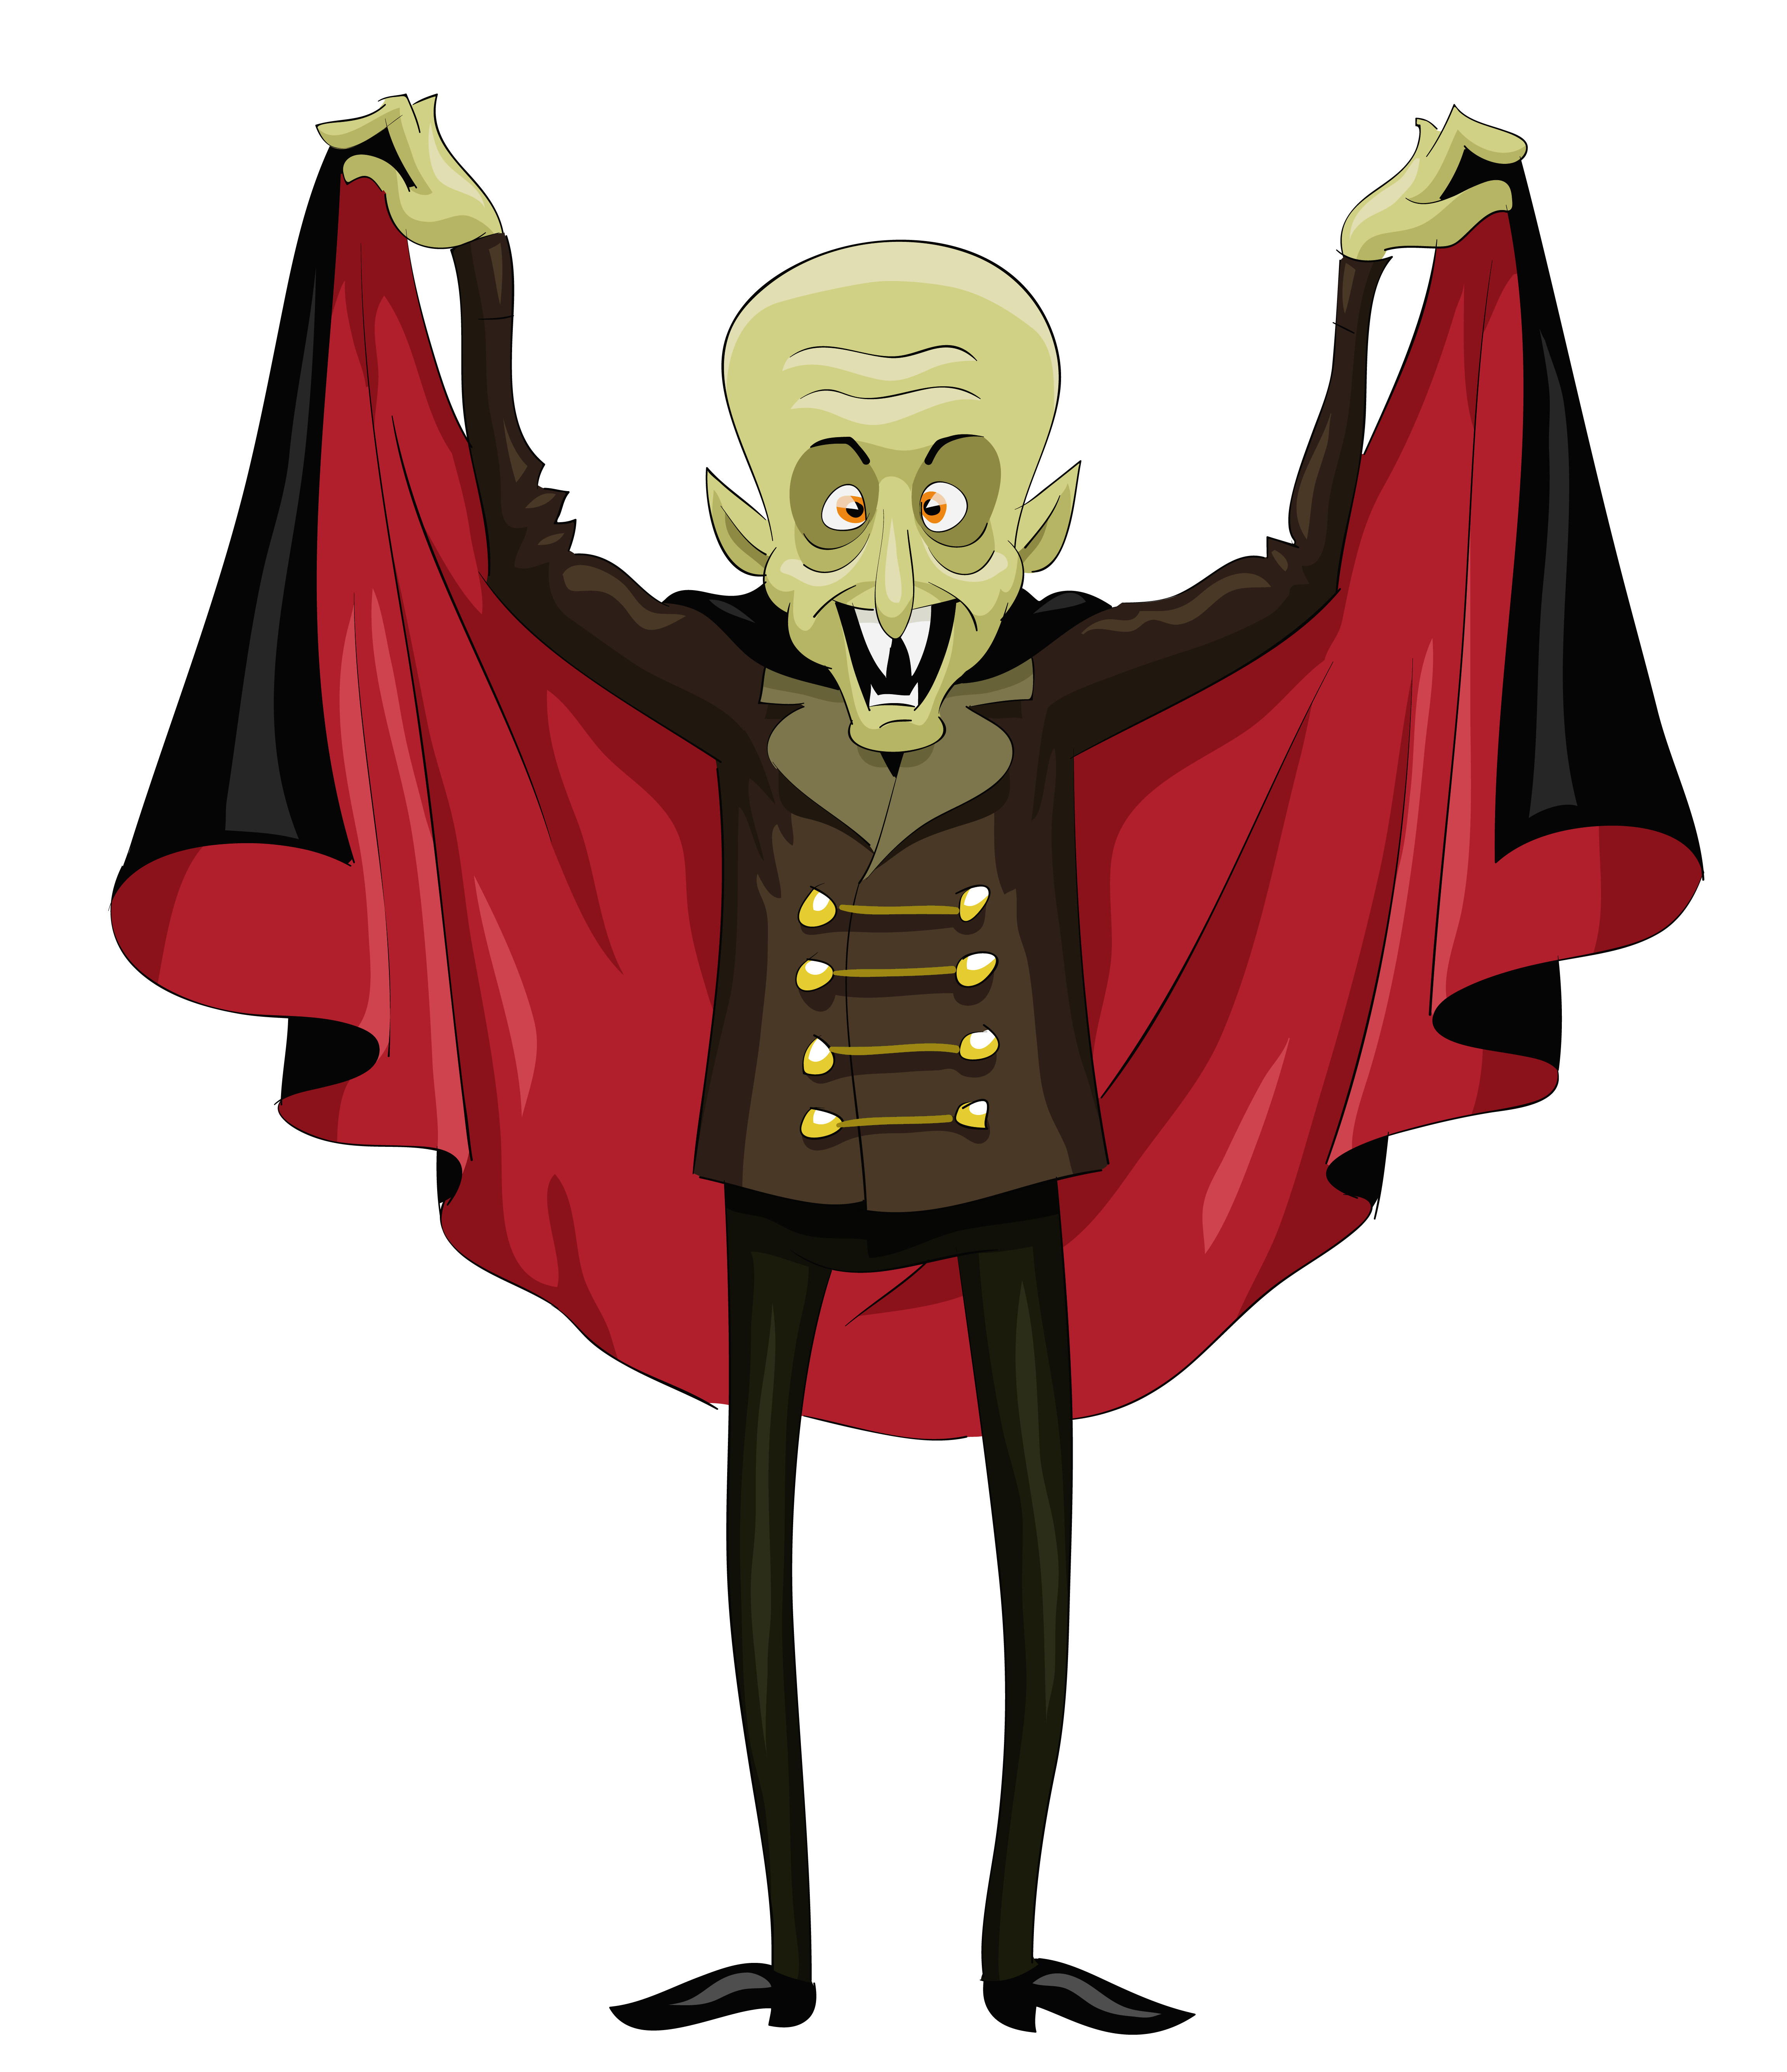 Dracula clipart halloween character Clipart Vampire full PNG available